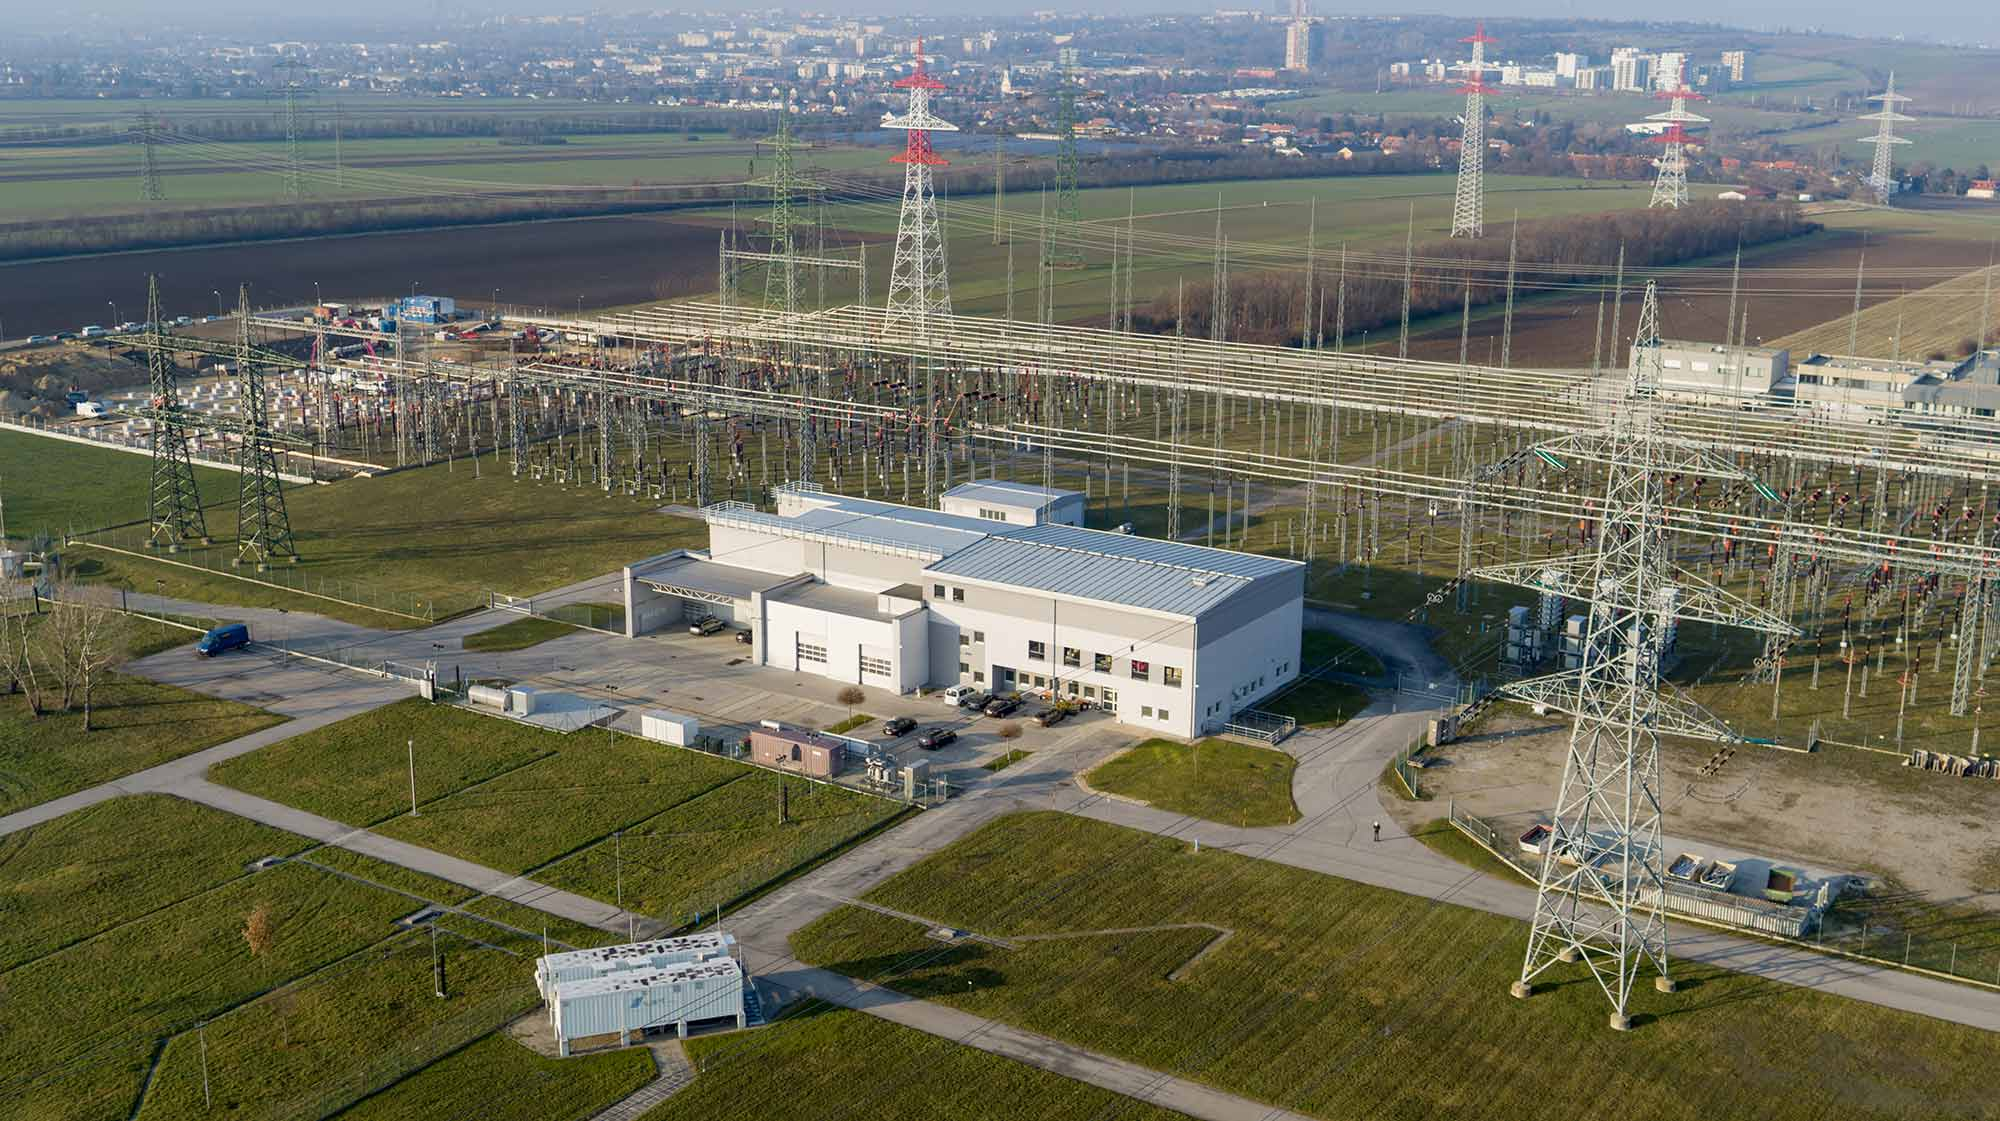 Vienna Southeast substation with ABS4TSO battery storage unit, Photo: APG/Rainer Wagenhofer